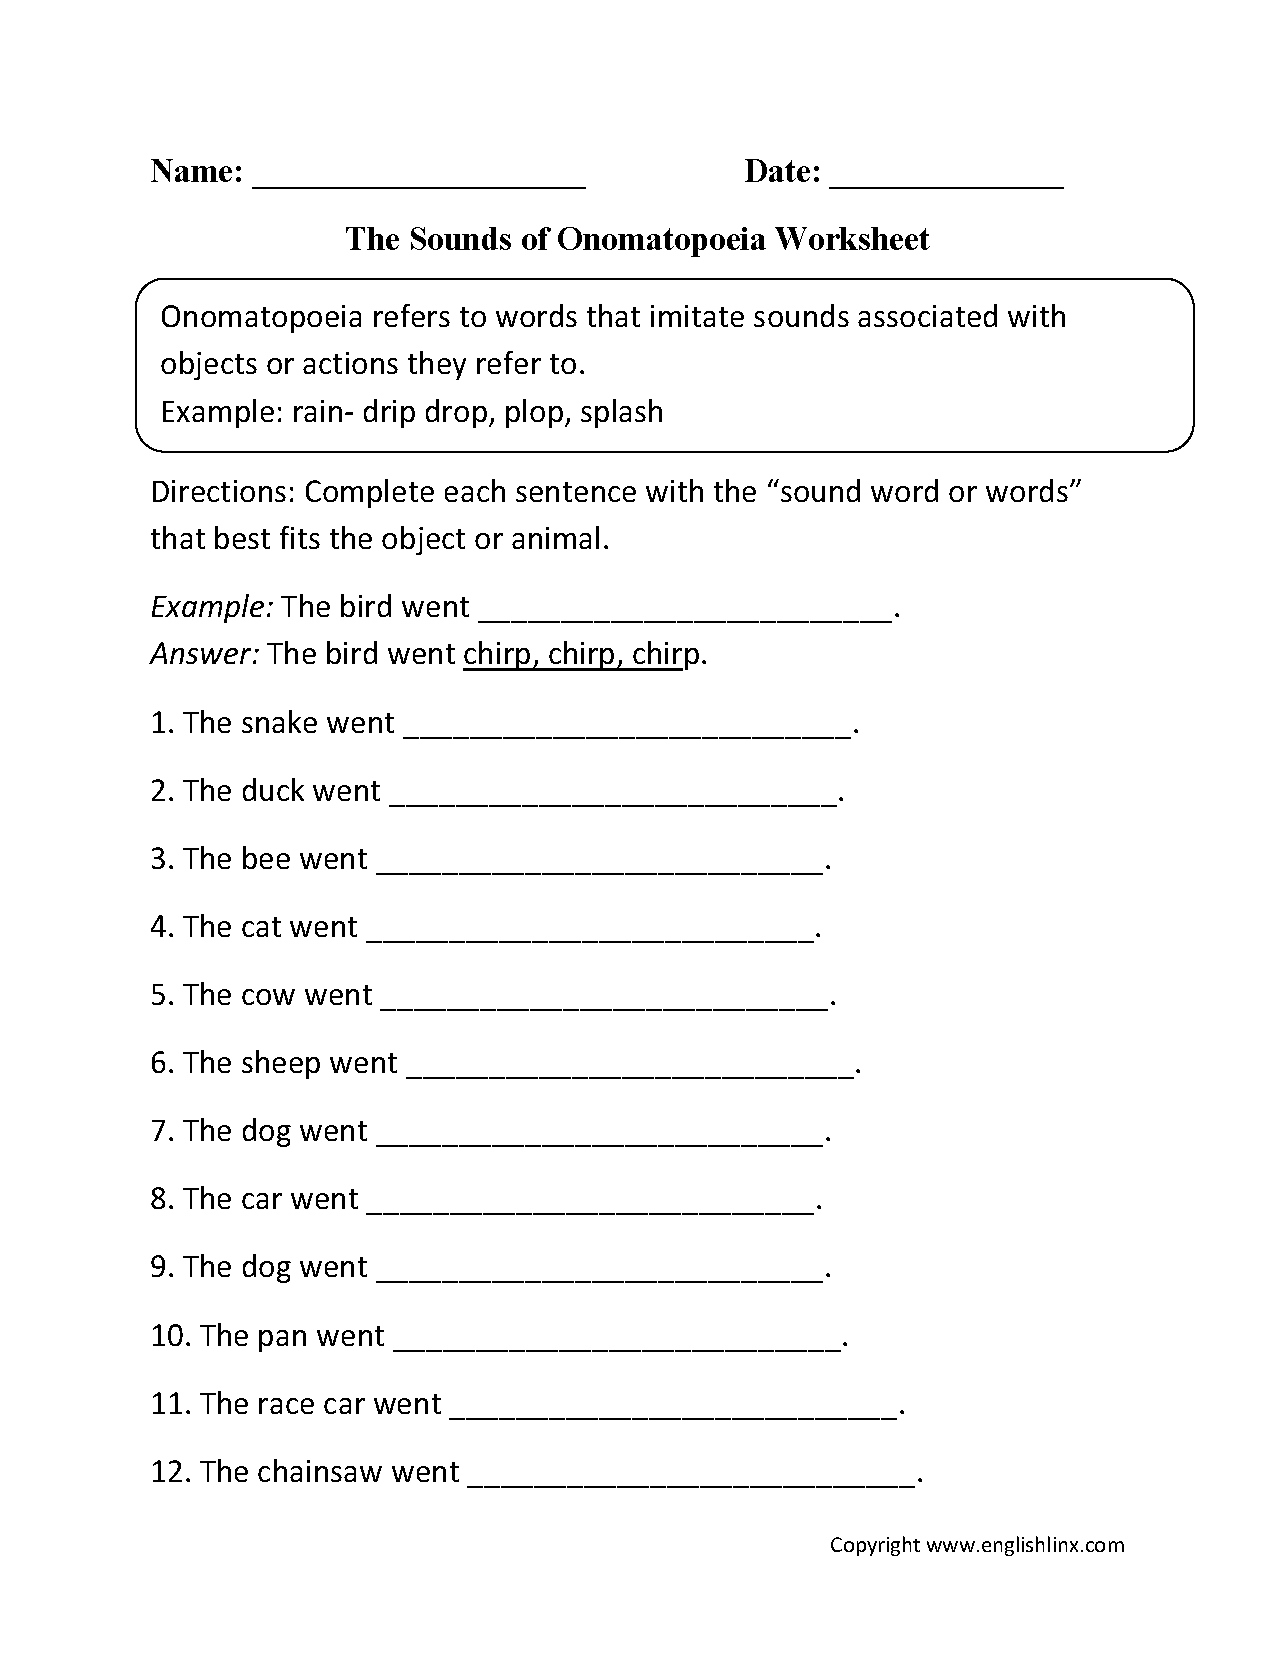 Aldiablosus  Winsome Englishlinxcom  Onomatopoeia Worksheets With Exciting Worksheet With Easy On The Eye Earned Income Credit Worksheet B Also Comprehensive Reading Worksheets In Addition Fifth Grade Math Worksheets Printable And Atom Worksheet Middle School As Well As Ph Scale Worksheets Additionally Diagramming Simple Sentences Worksheet From Englishlinxcom With Aldiablosus  Exciting Englishlinxcom  Onomatopoeia Worksheets With Easy On The Eye Worksheet And Winsome Earned Income Credit Worksheet B Also Comprehensive Reading Worksheets In Addition Fifth Grade Math Worksheets Printable From Englishlinxcom